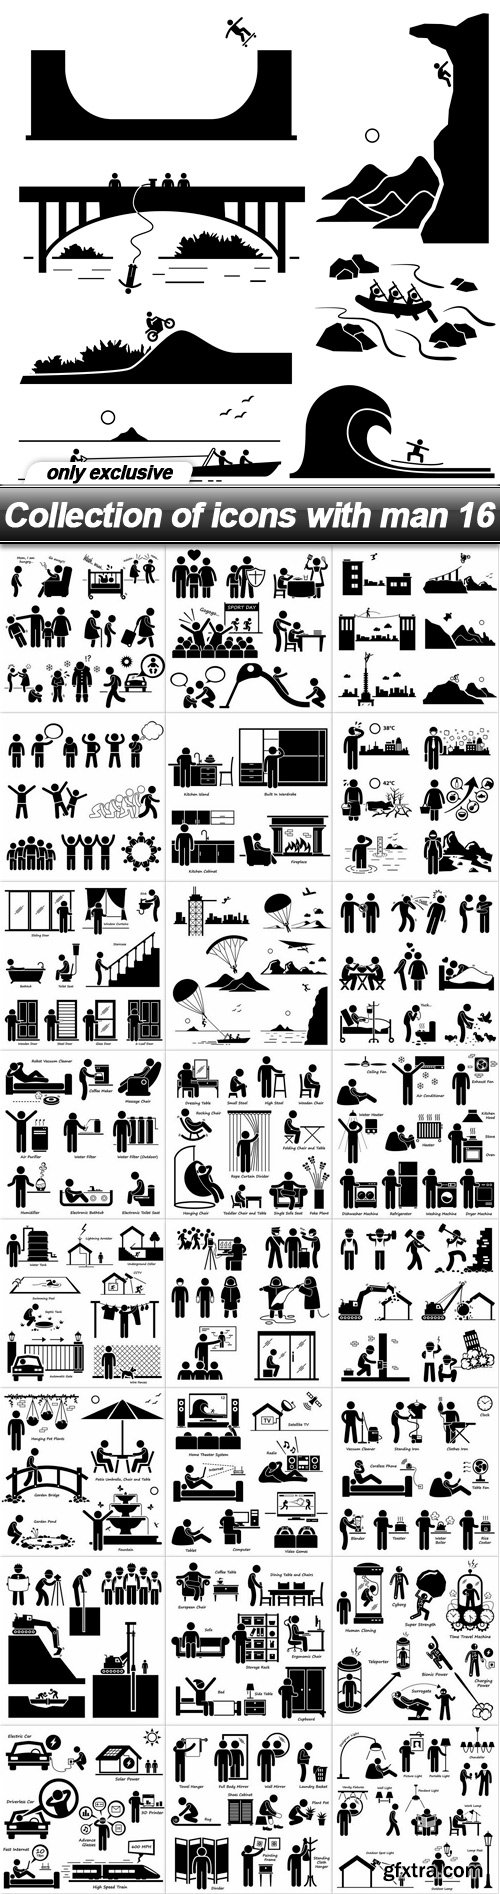 Collection of icons with man 16 - 25 EPS